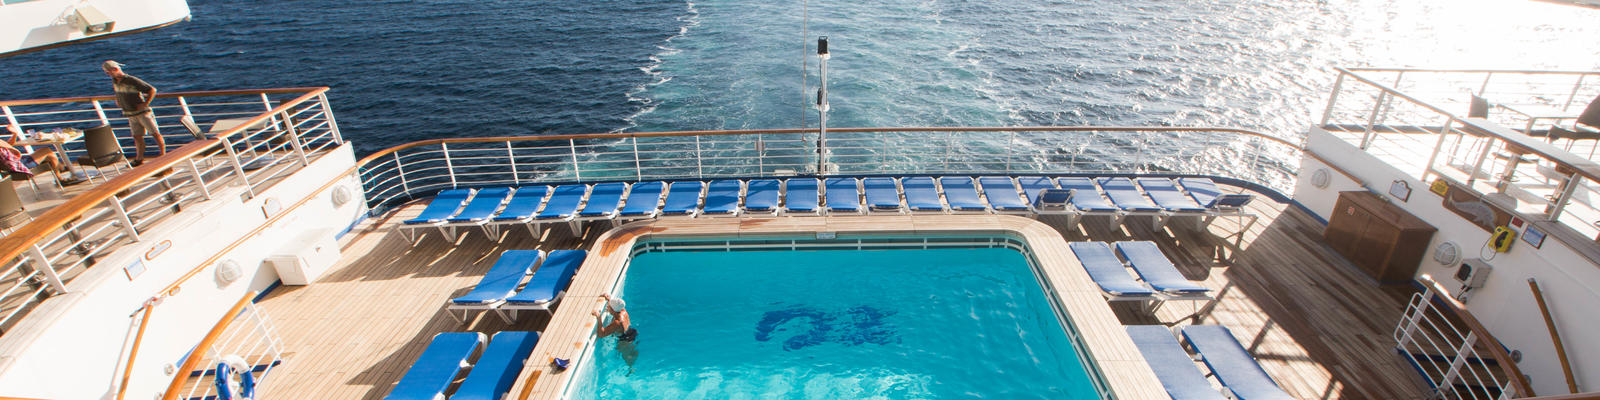 The Terrace Pool on Caribbean Princess (Photo: Cruise Critic)